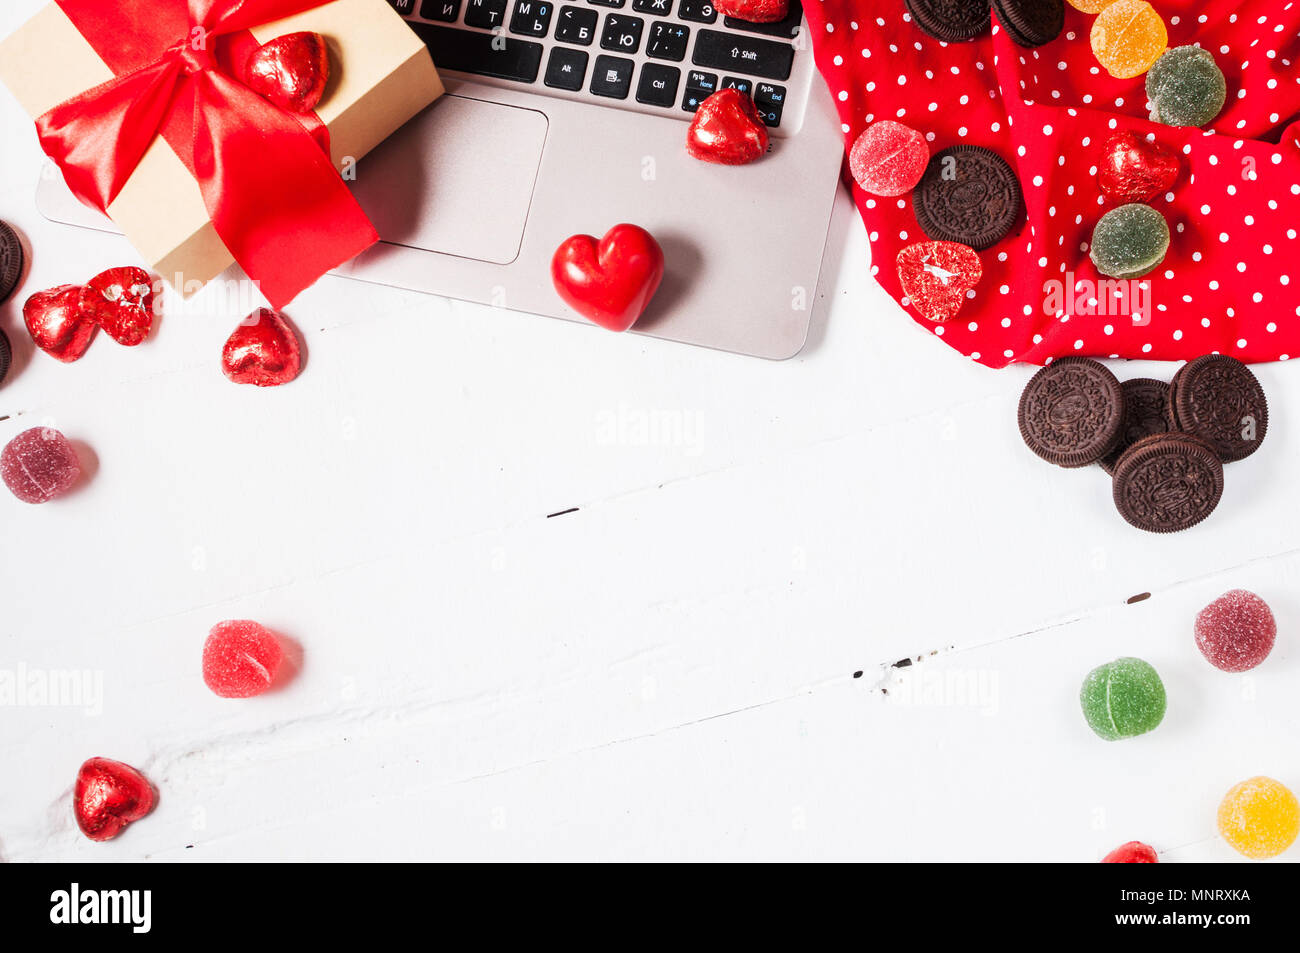 Preparing For St Valentine S Day Laptop Gift Decorations And